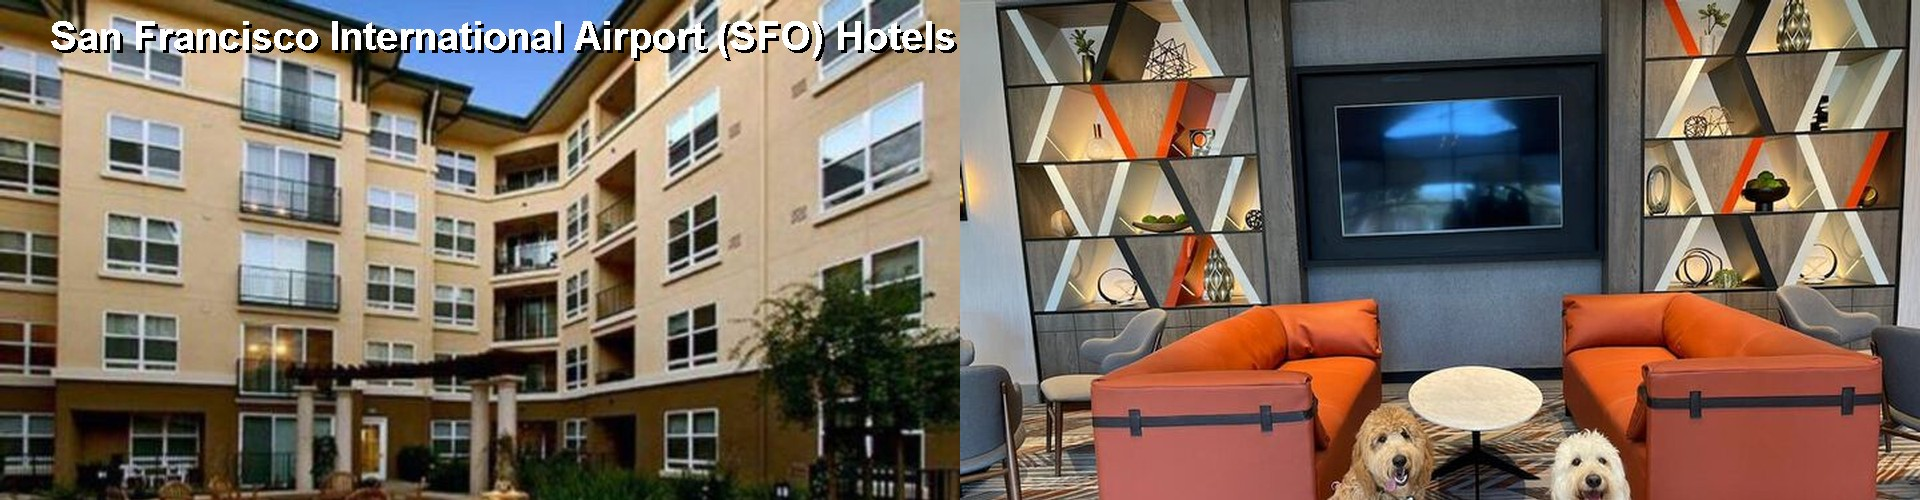 5 Best Hotels Near San Francisco International Airport Sfo